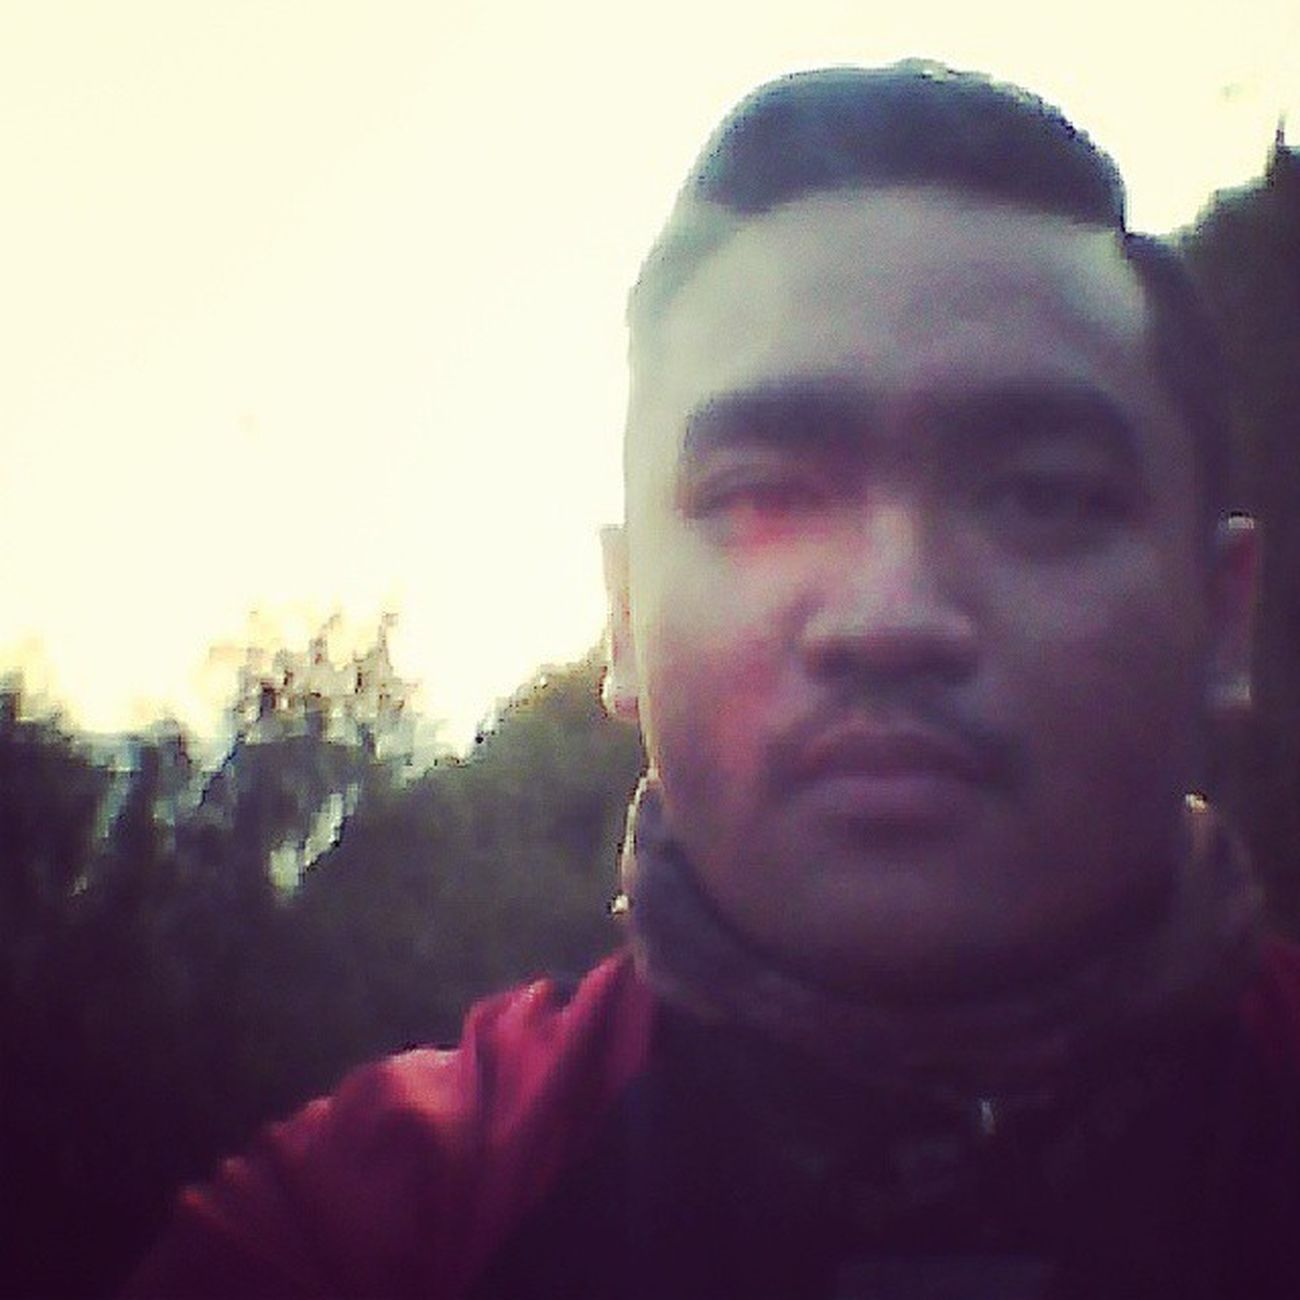 Latepost Latarombo Panderman Sunrise